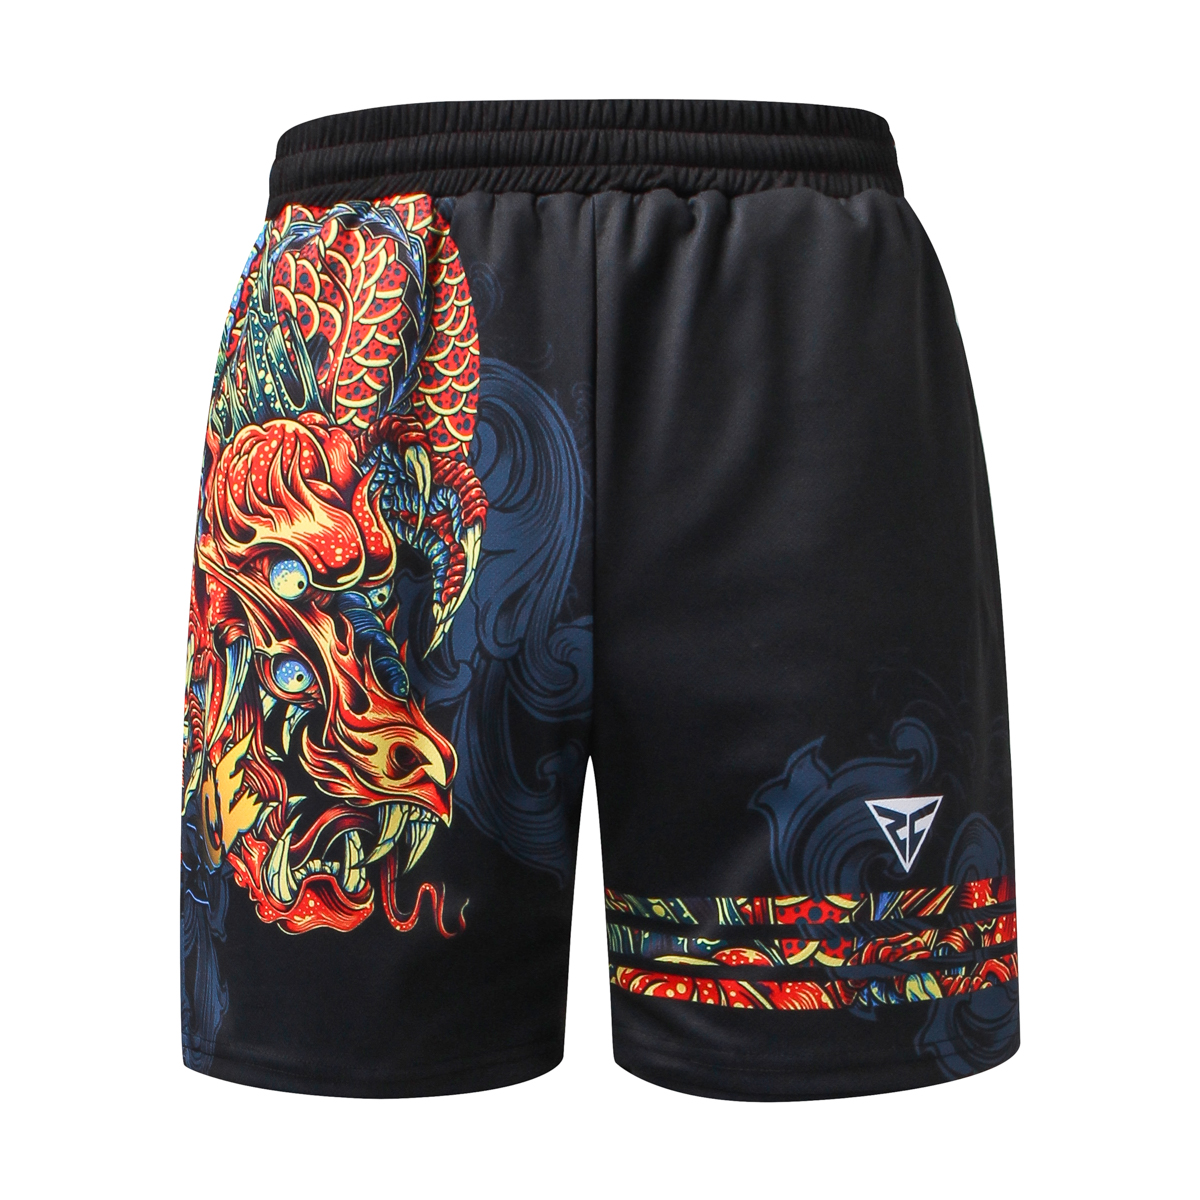 Buy sport shorts patterned and get free shipping on AliExpress.com fb8b0e4a864